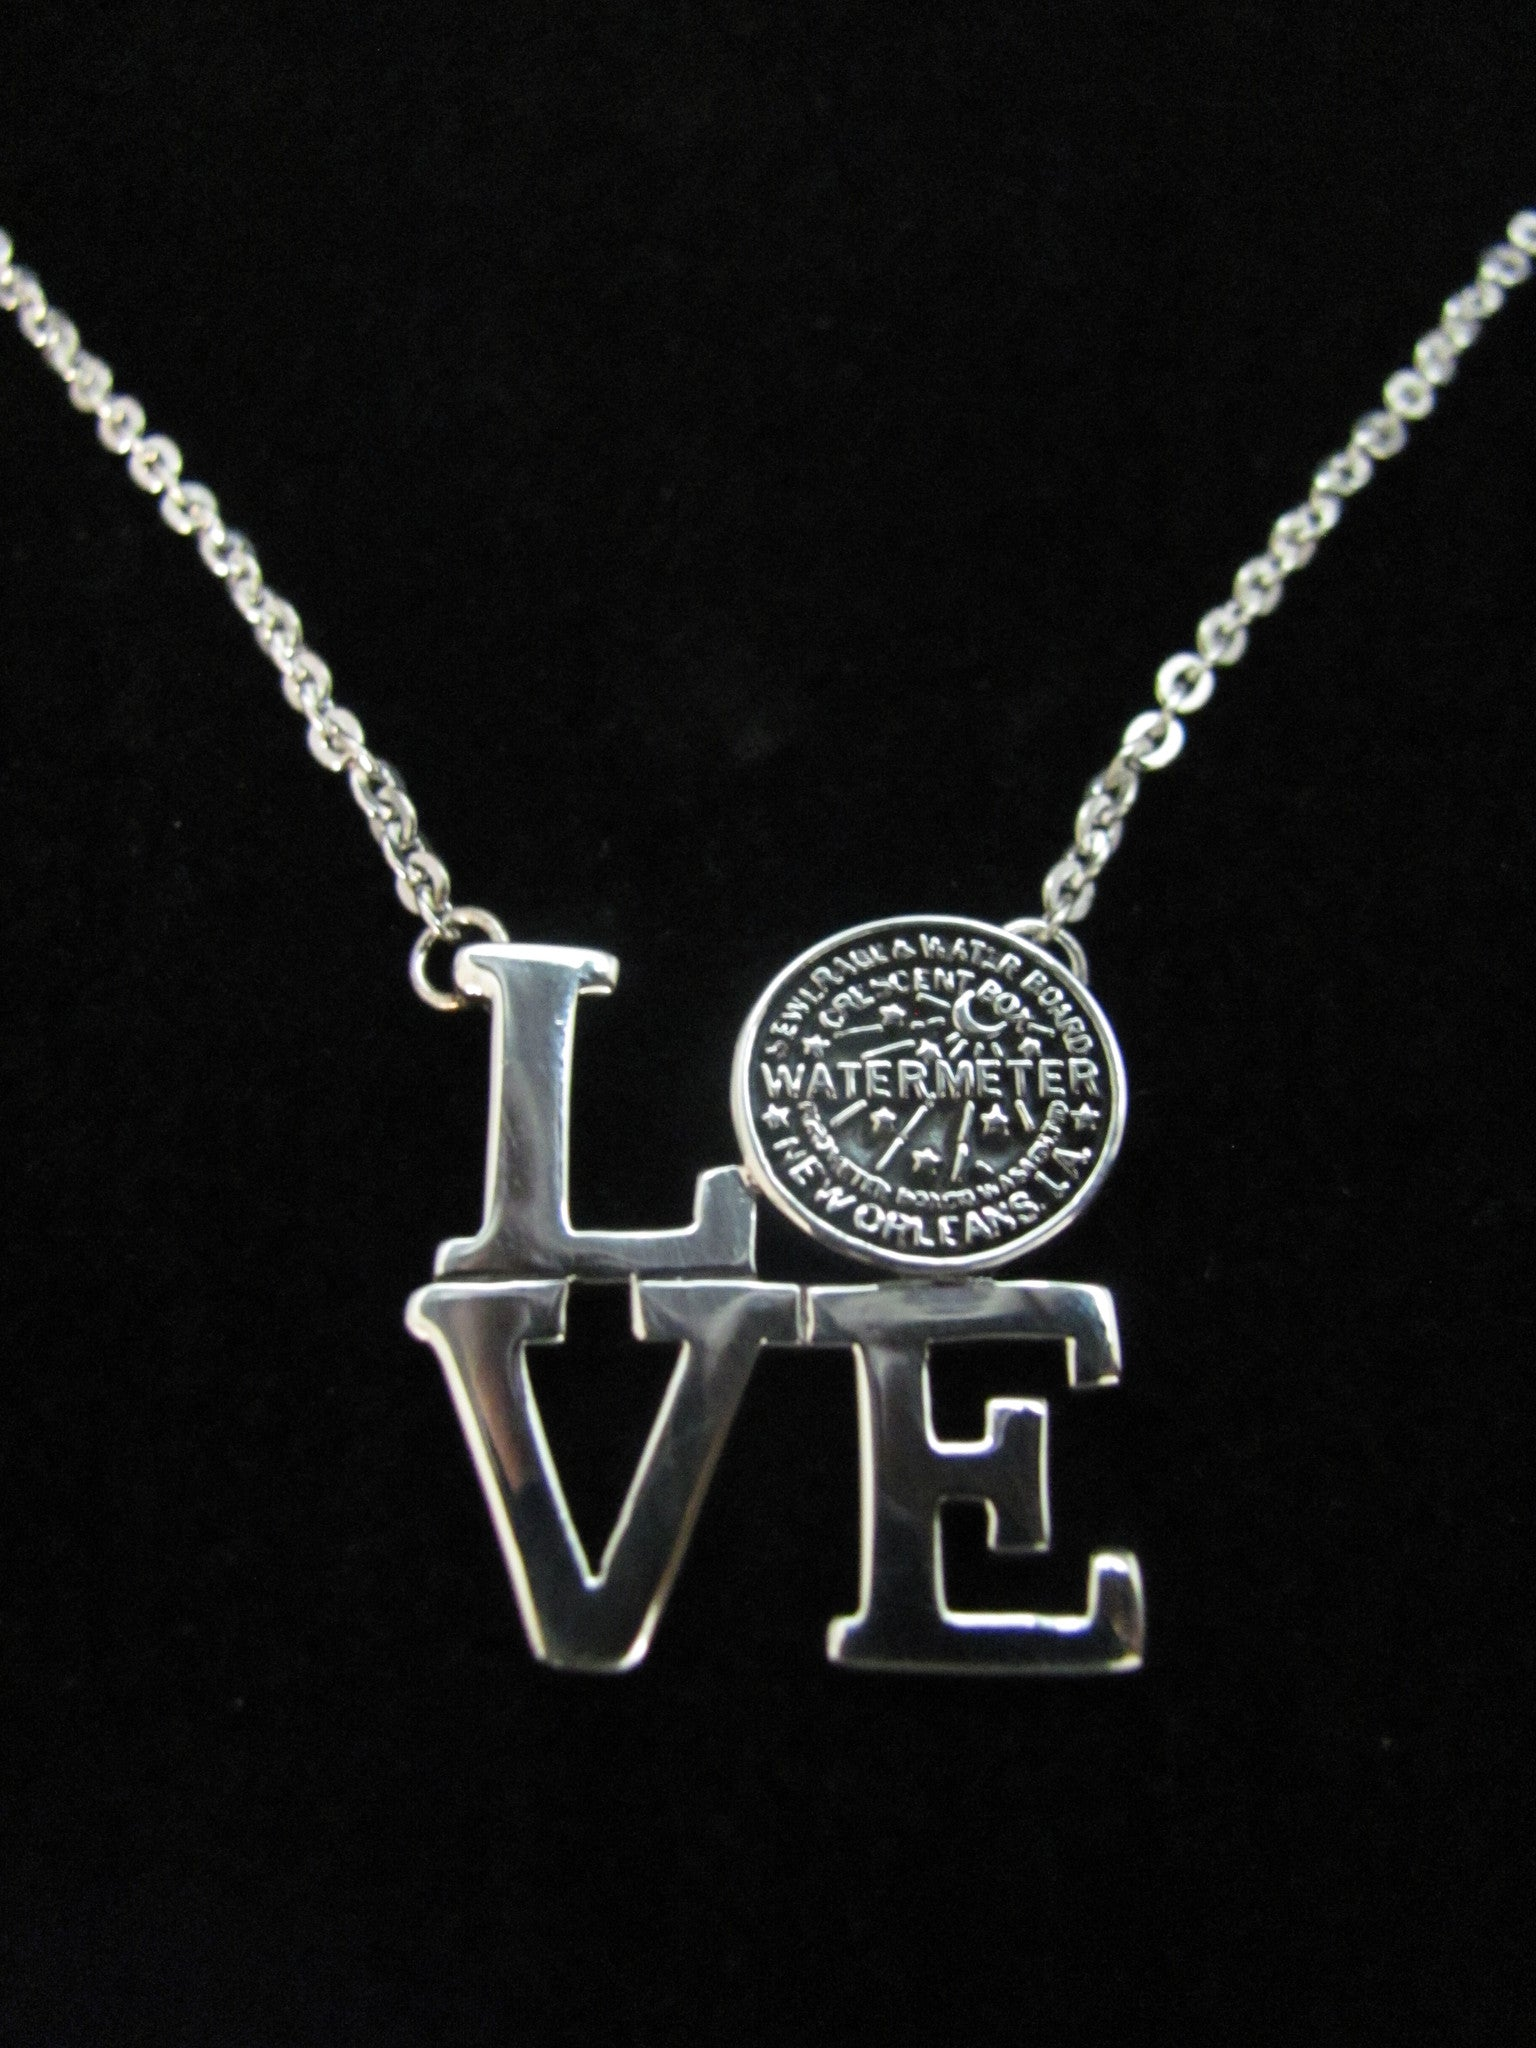 "Water Meter ""Love"" Necklace"